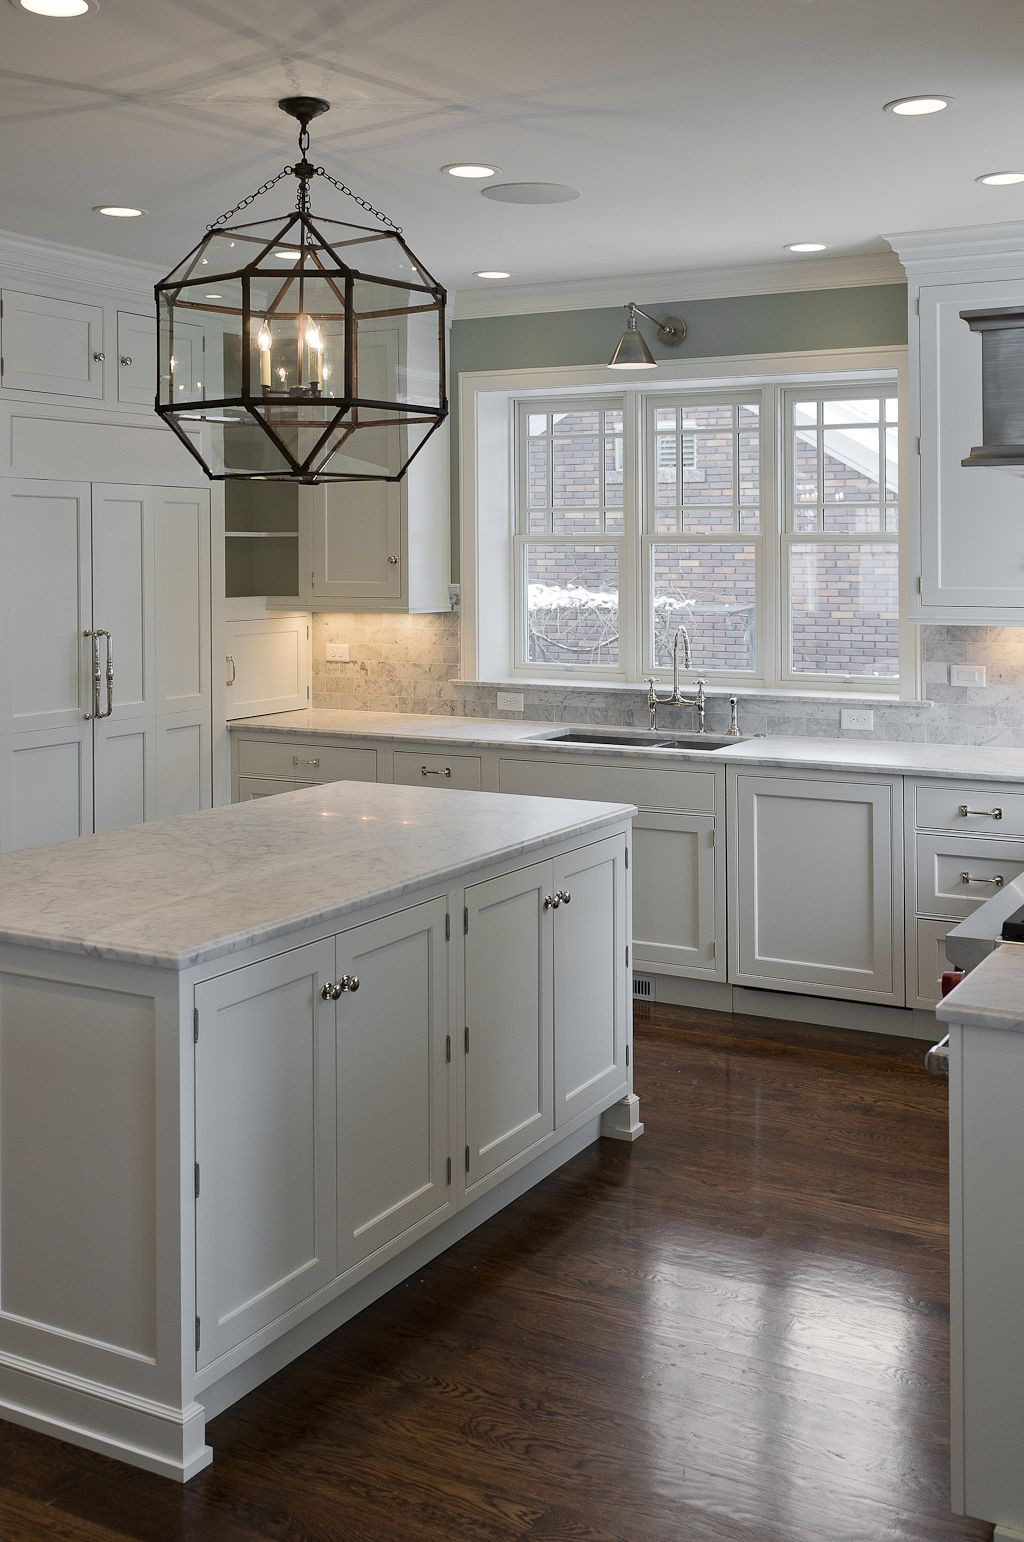 all hardwood flooring depot ltd of 30 spectacular white kitchens with dark wood floors kitchen dining with dark floorswhite cabinets white granite silver knobs and gray paint wall